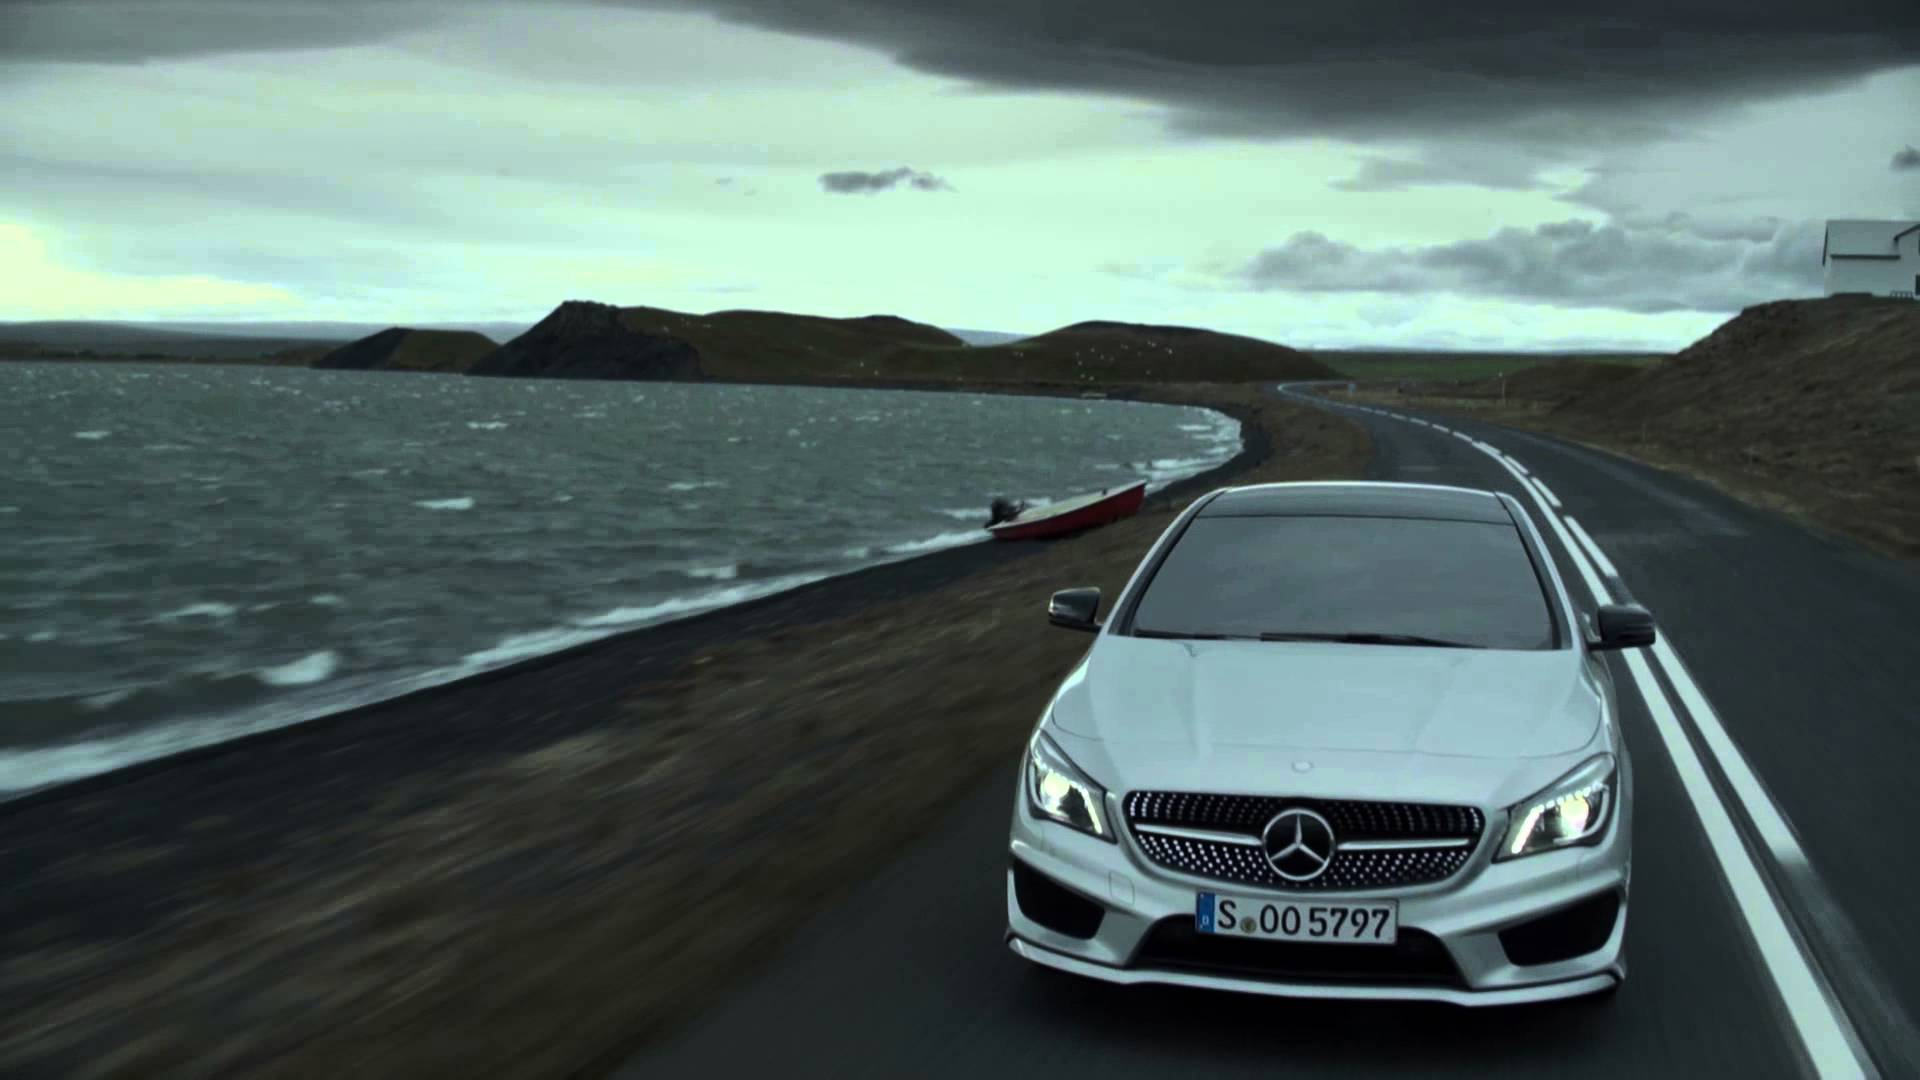 Untamed. The new CLA - Mercedes-Benz original